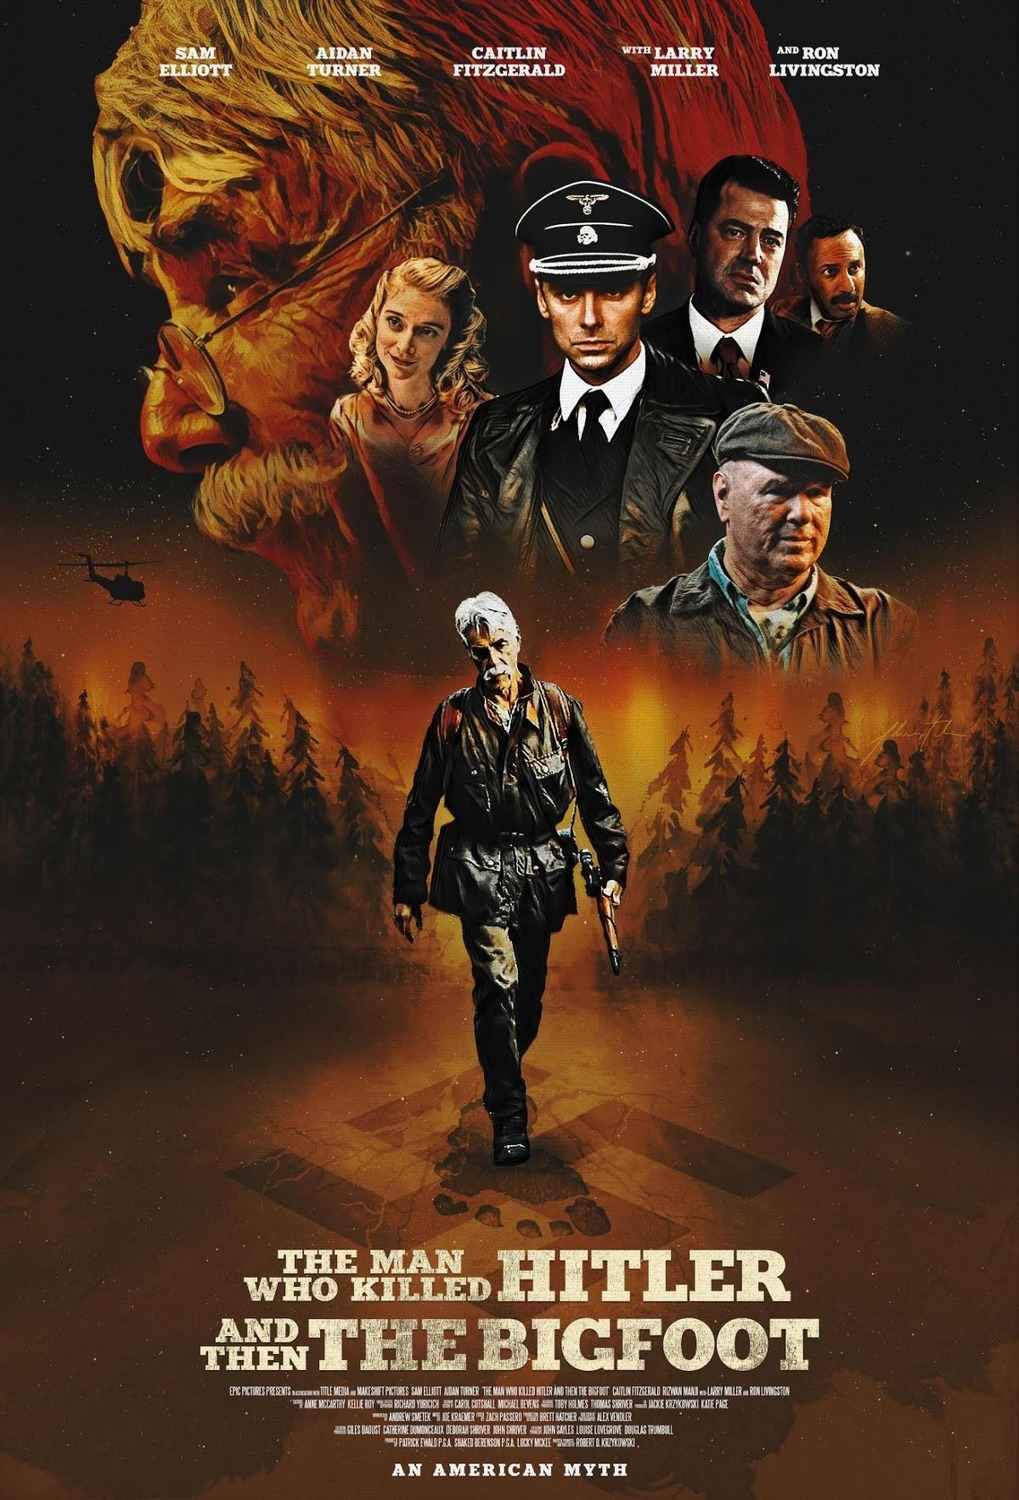 دانلود فیلم The Man Who Killed Hitler And Then The Bigfoot 2018